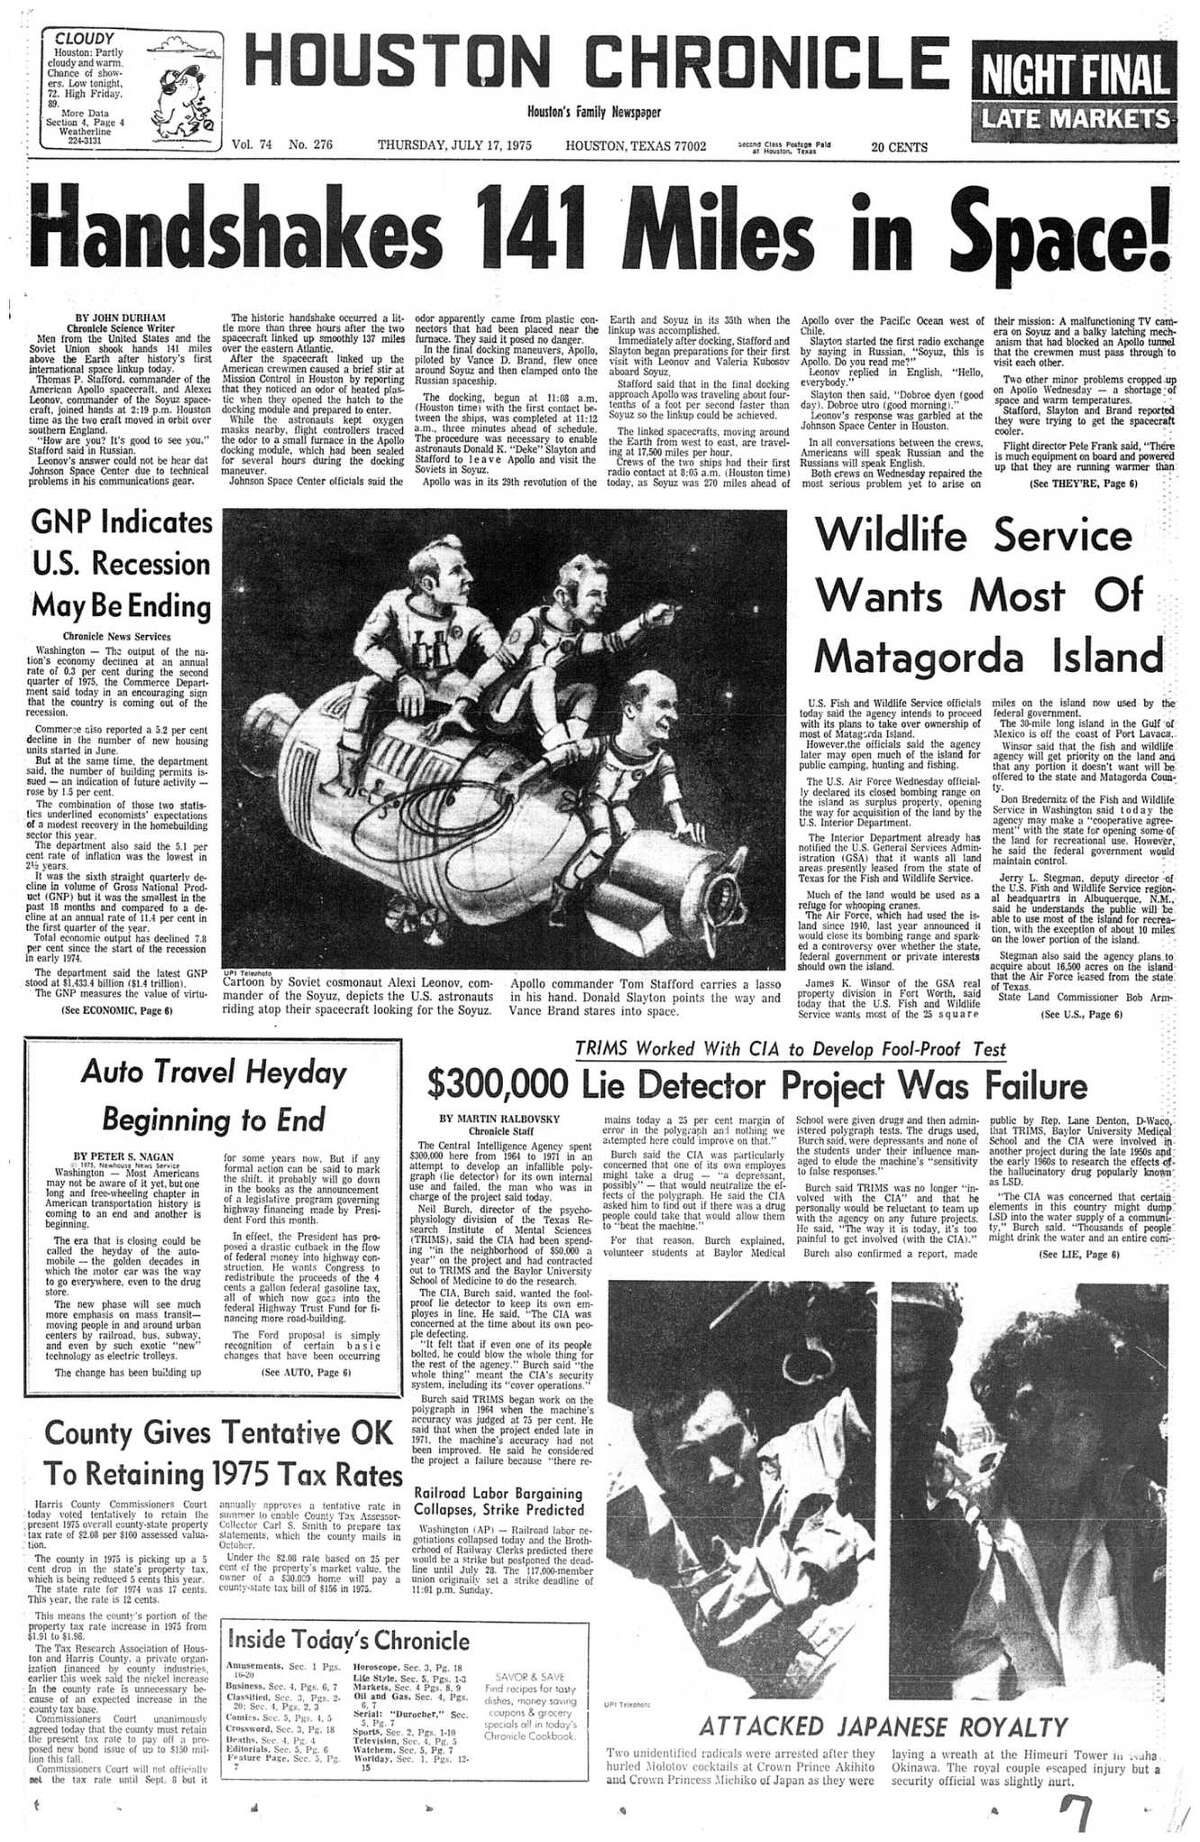 Houston Chronicle front page - July 17, 1975 - section 1, page 1. (APOLLO SOYUZ) Handshakes 141 Miles in Space!